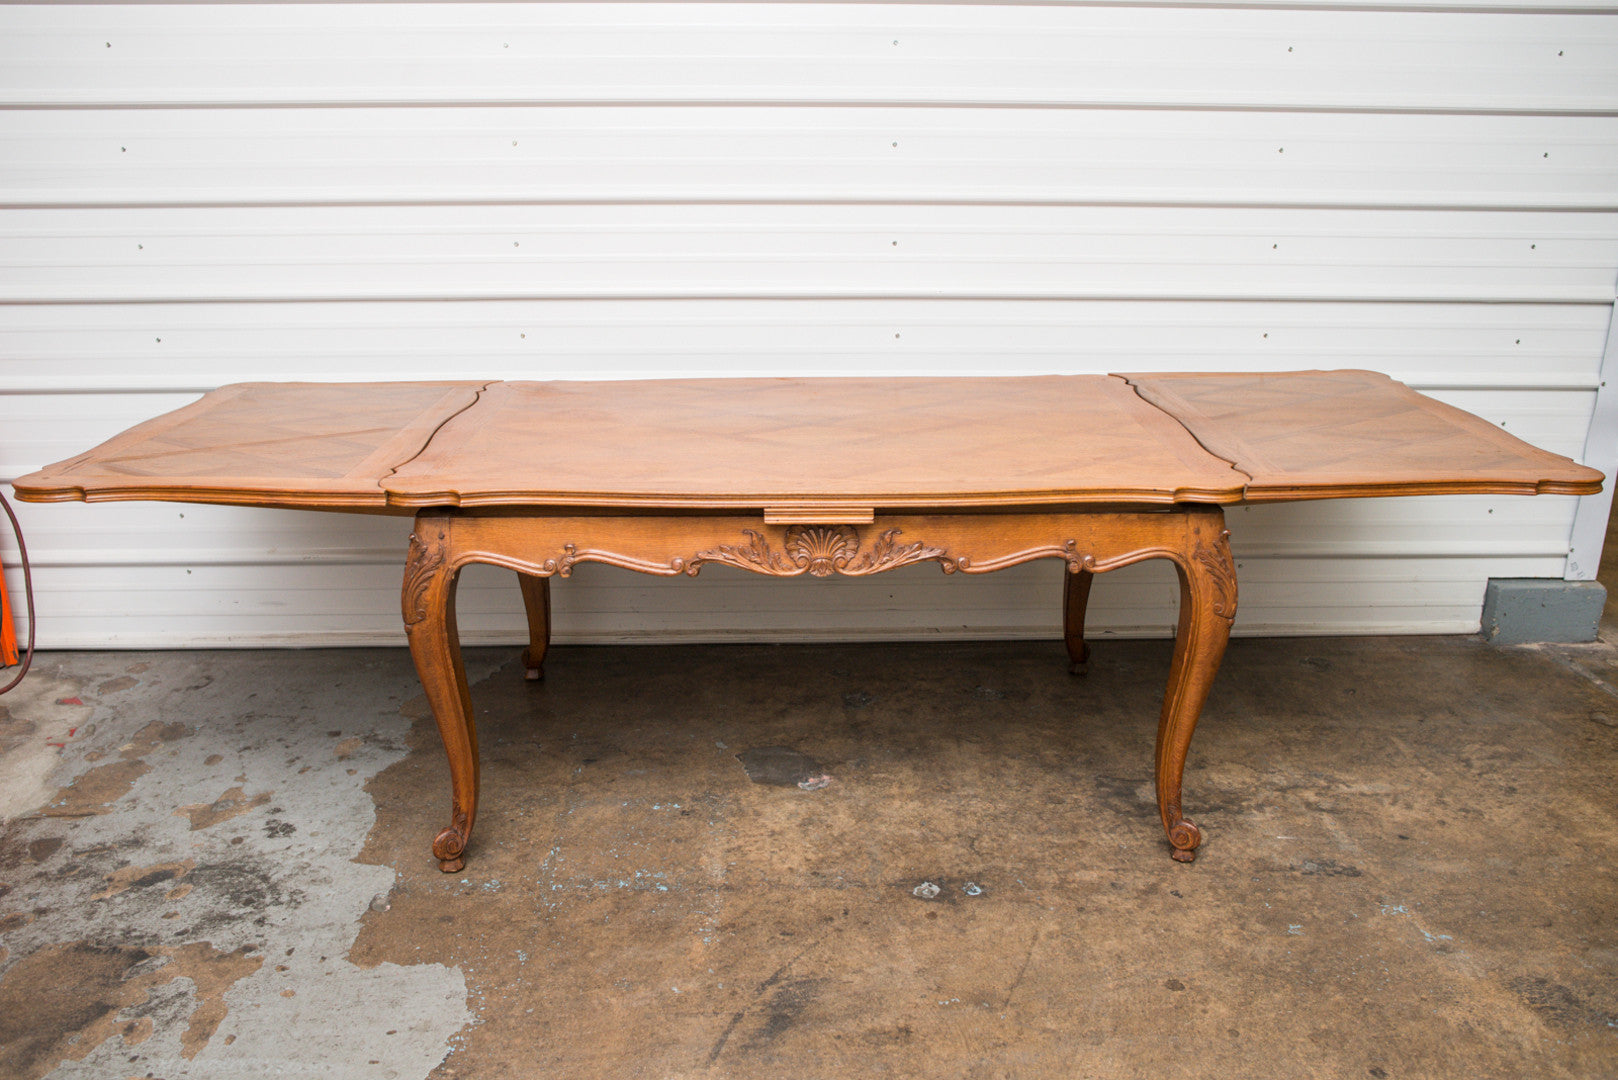 Louis XV Style Refectory Table Parquet Top Shell Motifs